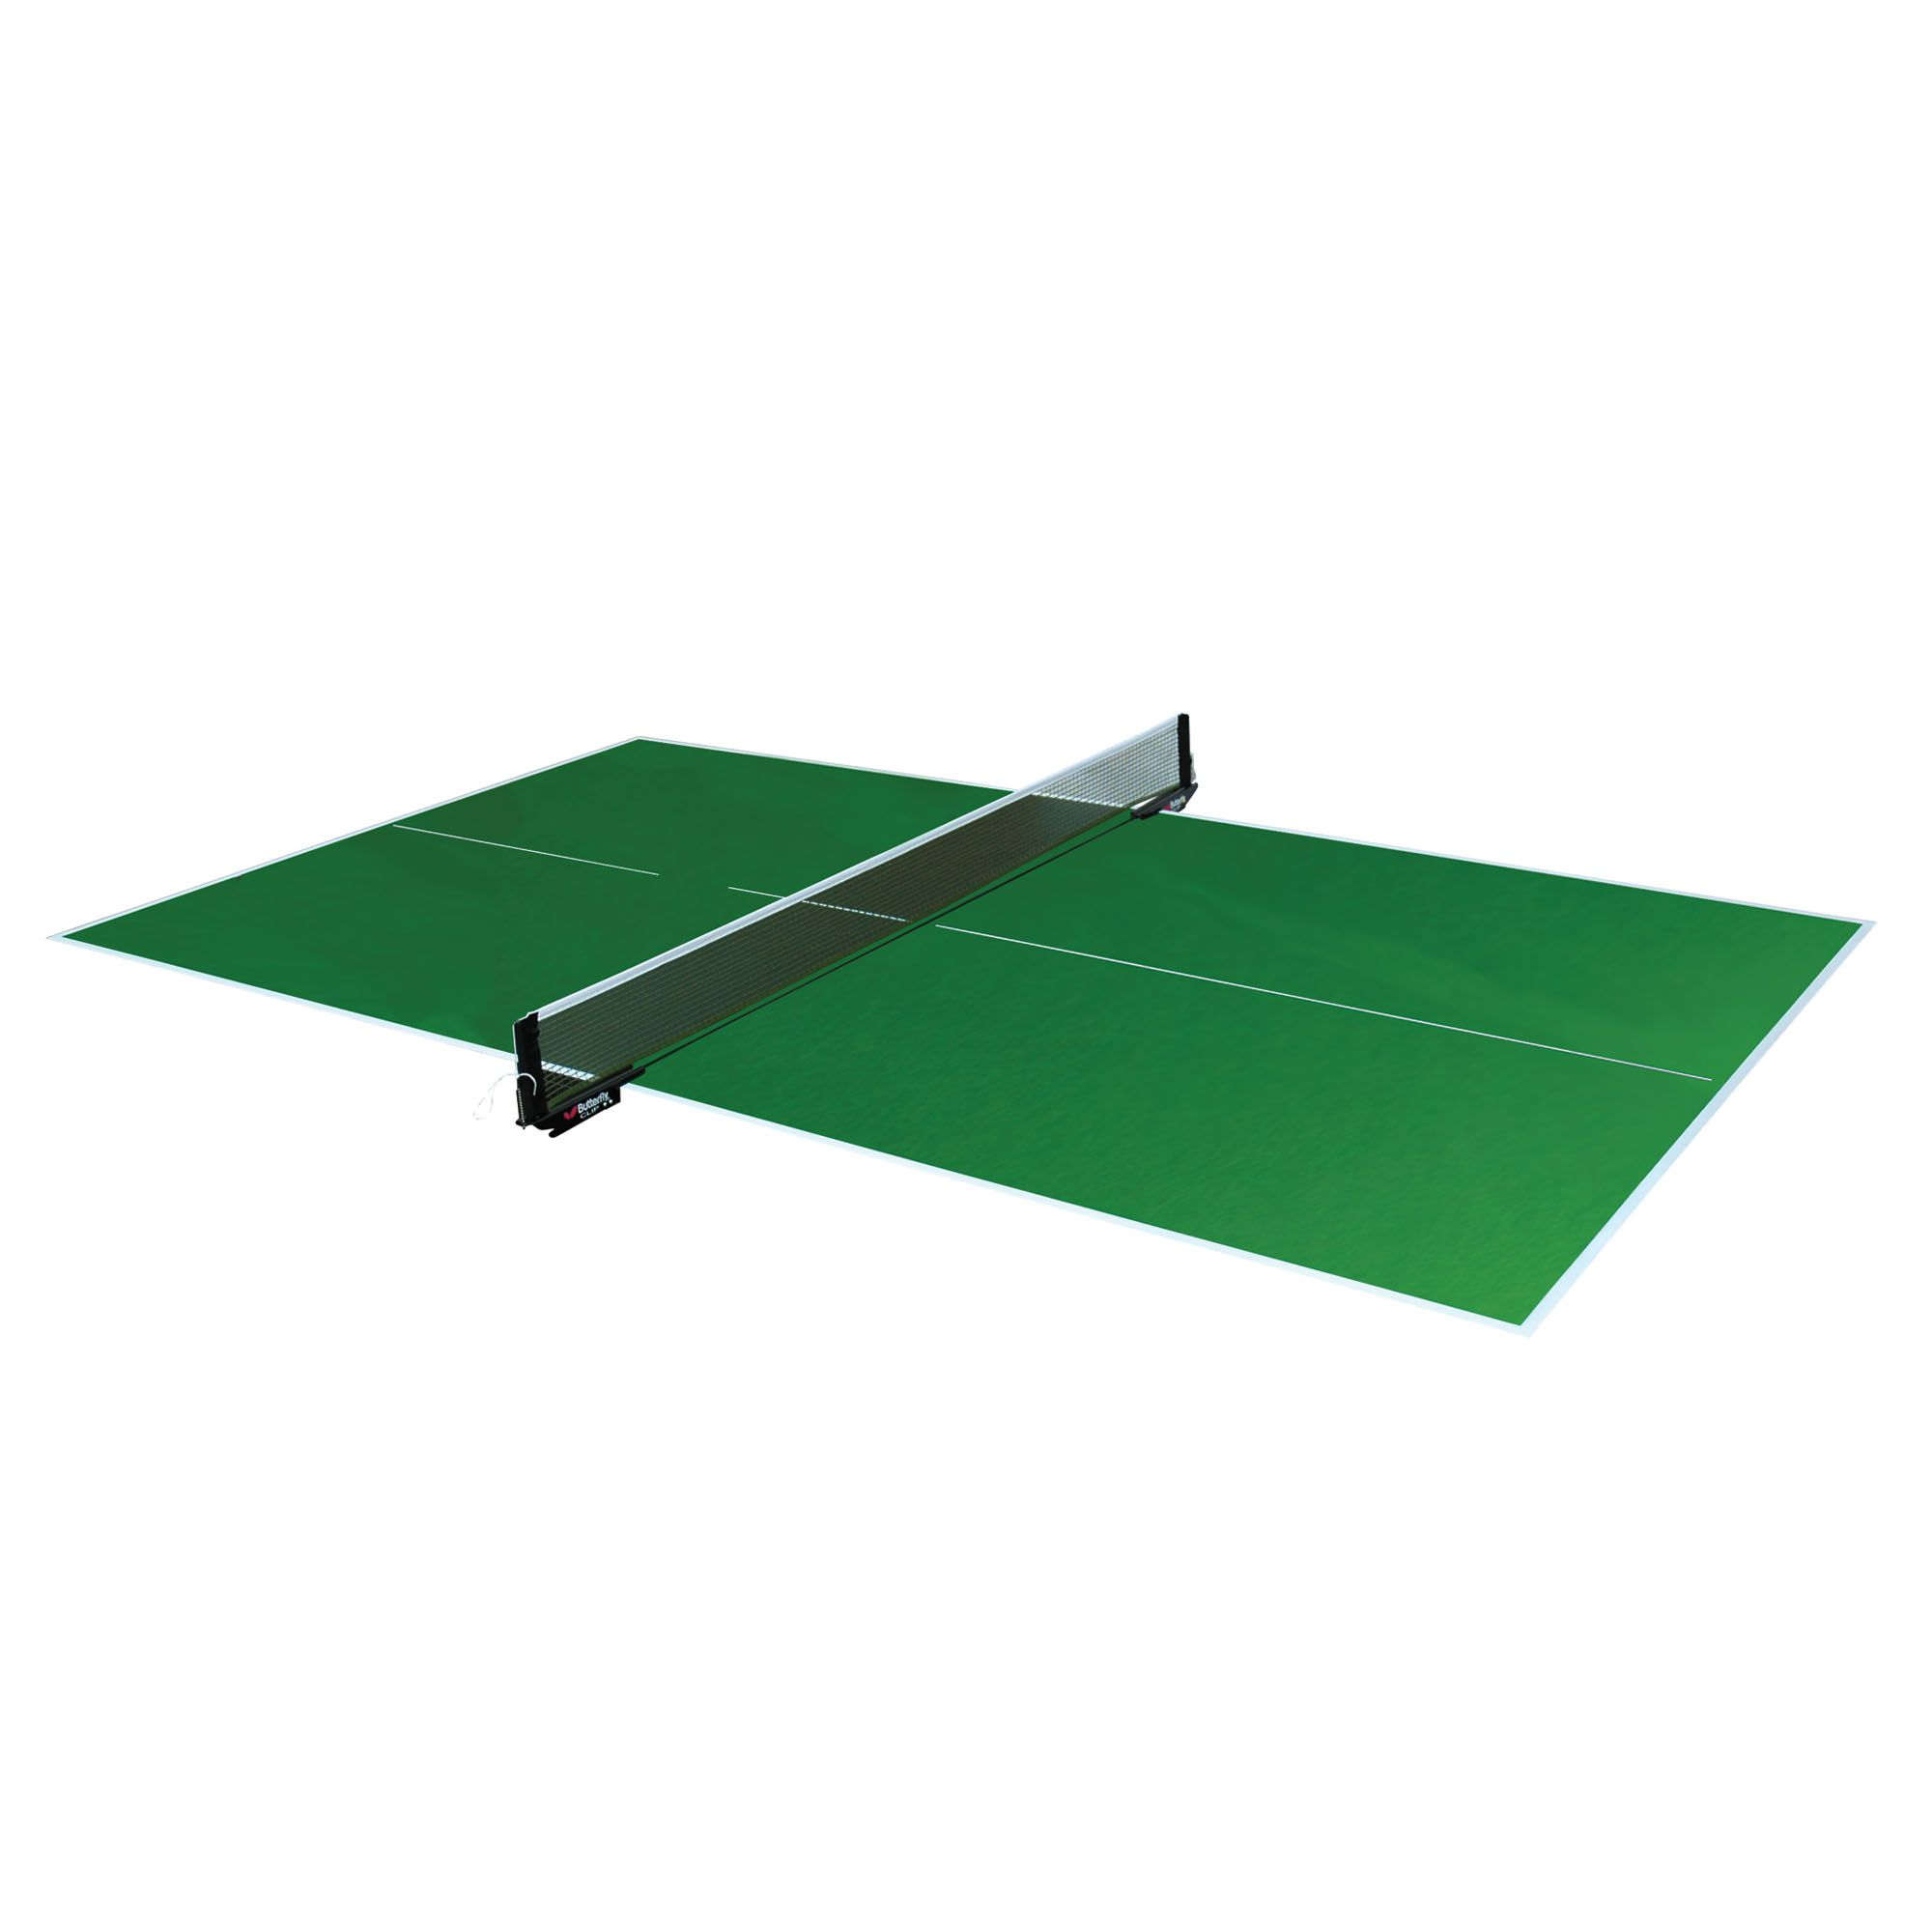 Butterfly full size green table top table tennis table - Measurements of a table tennis table ...